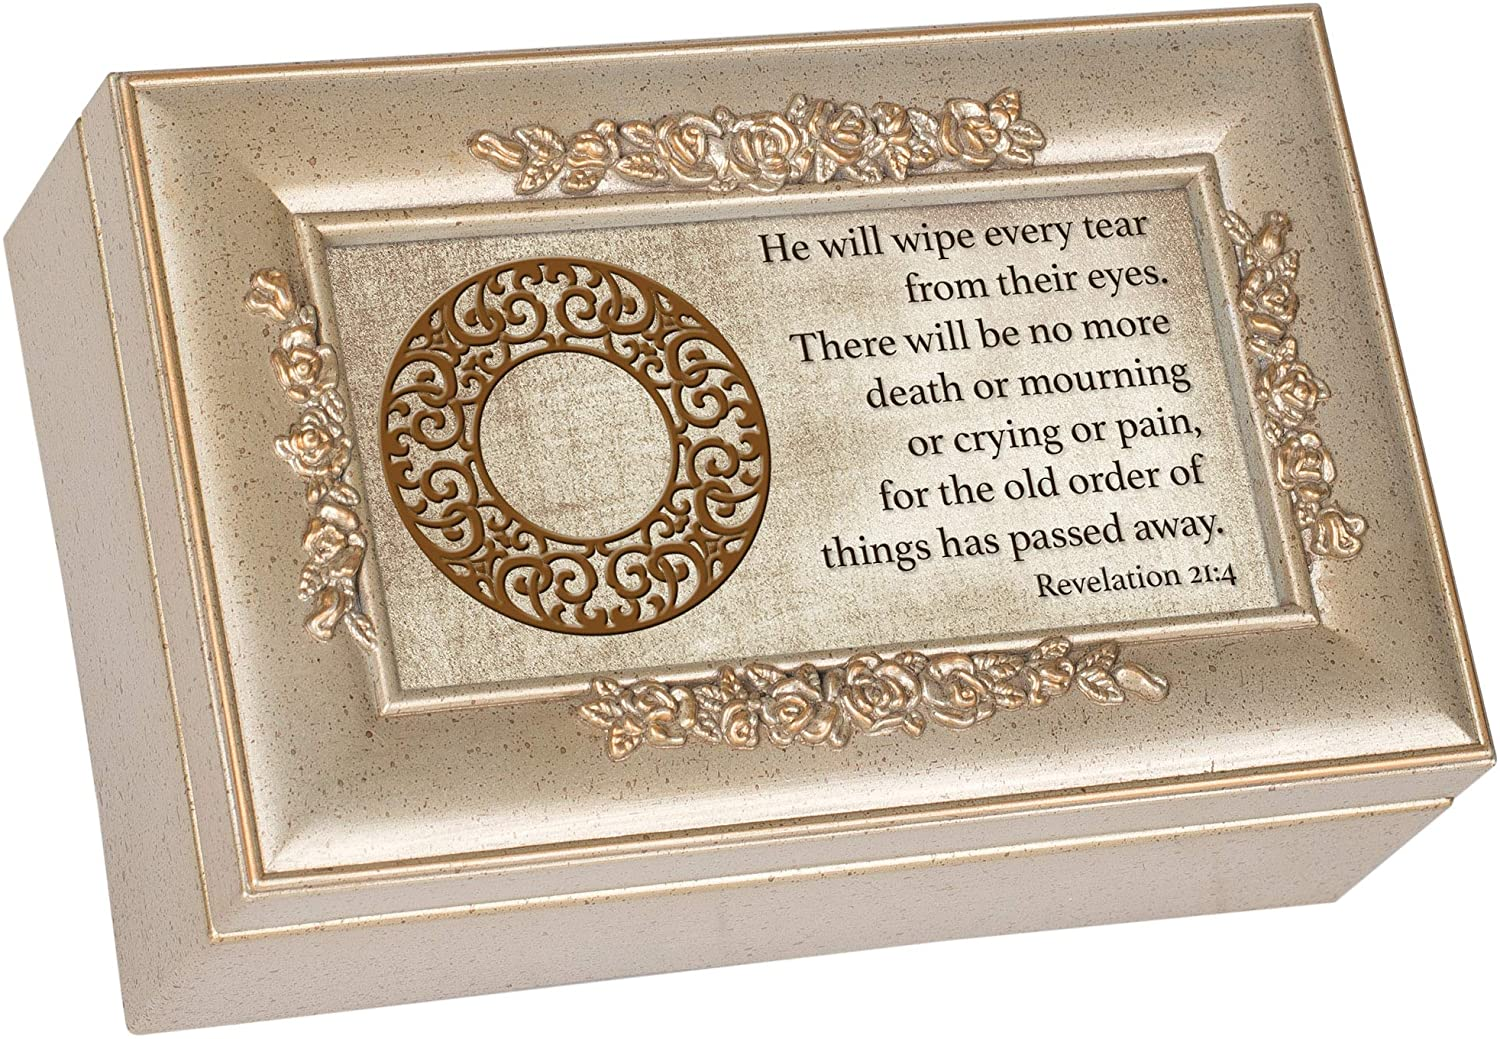 Cottage Garden No More Tears Inspirational Champagne Silvertone Bevel Petite Rose Music Box Plays Amazing Grace